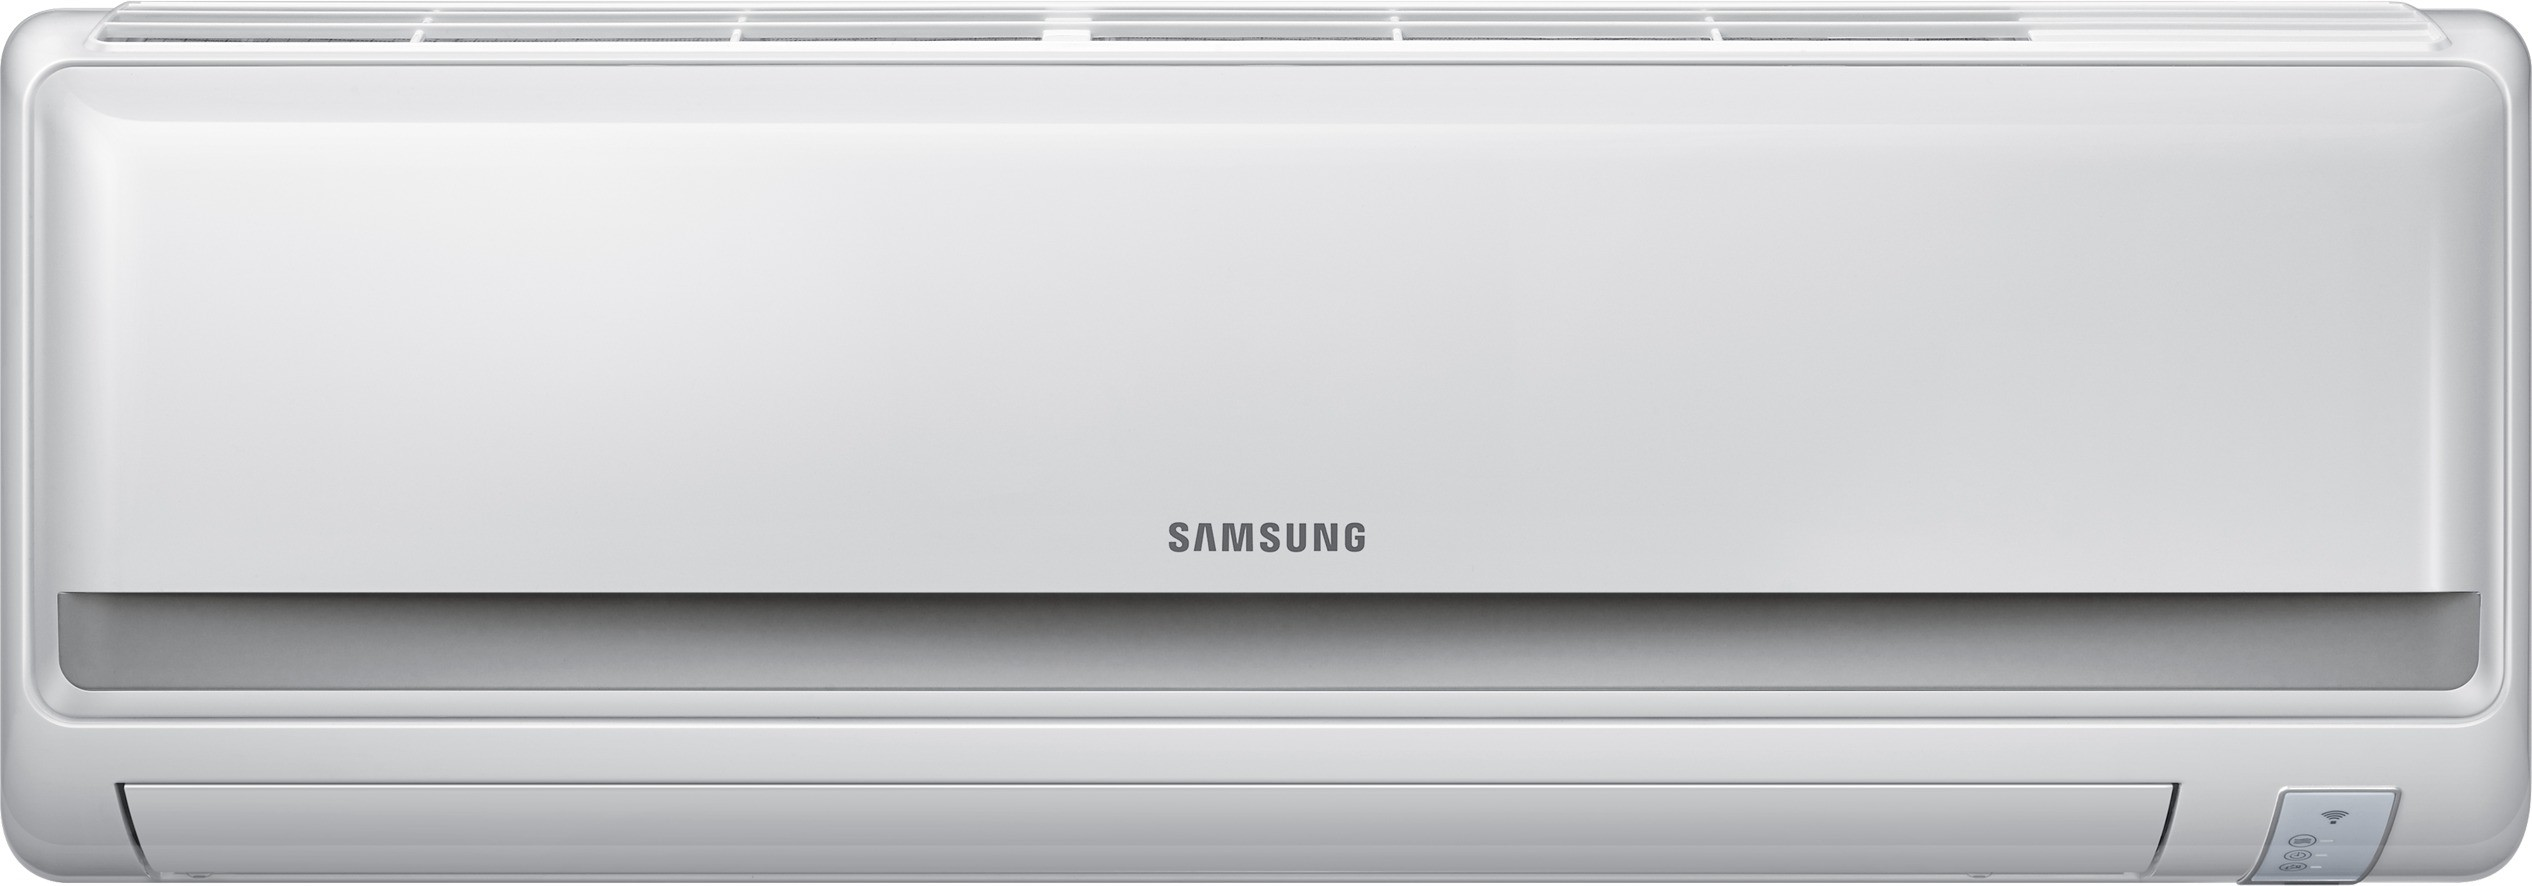 SAMSUNG 1.5 Ton 3 Star Split AC - Gray Strip(AR18MC3ULGM)